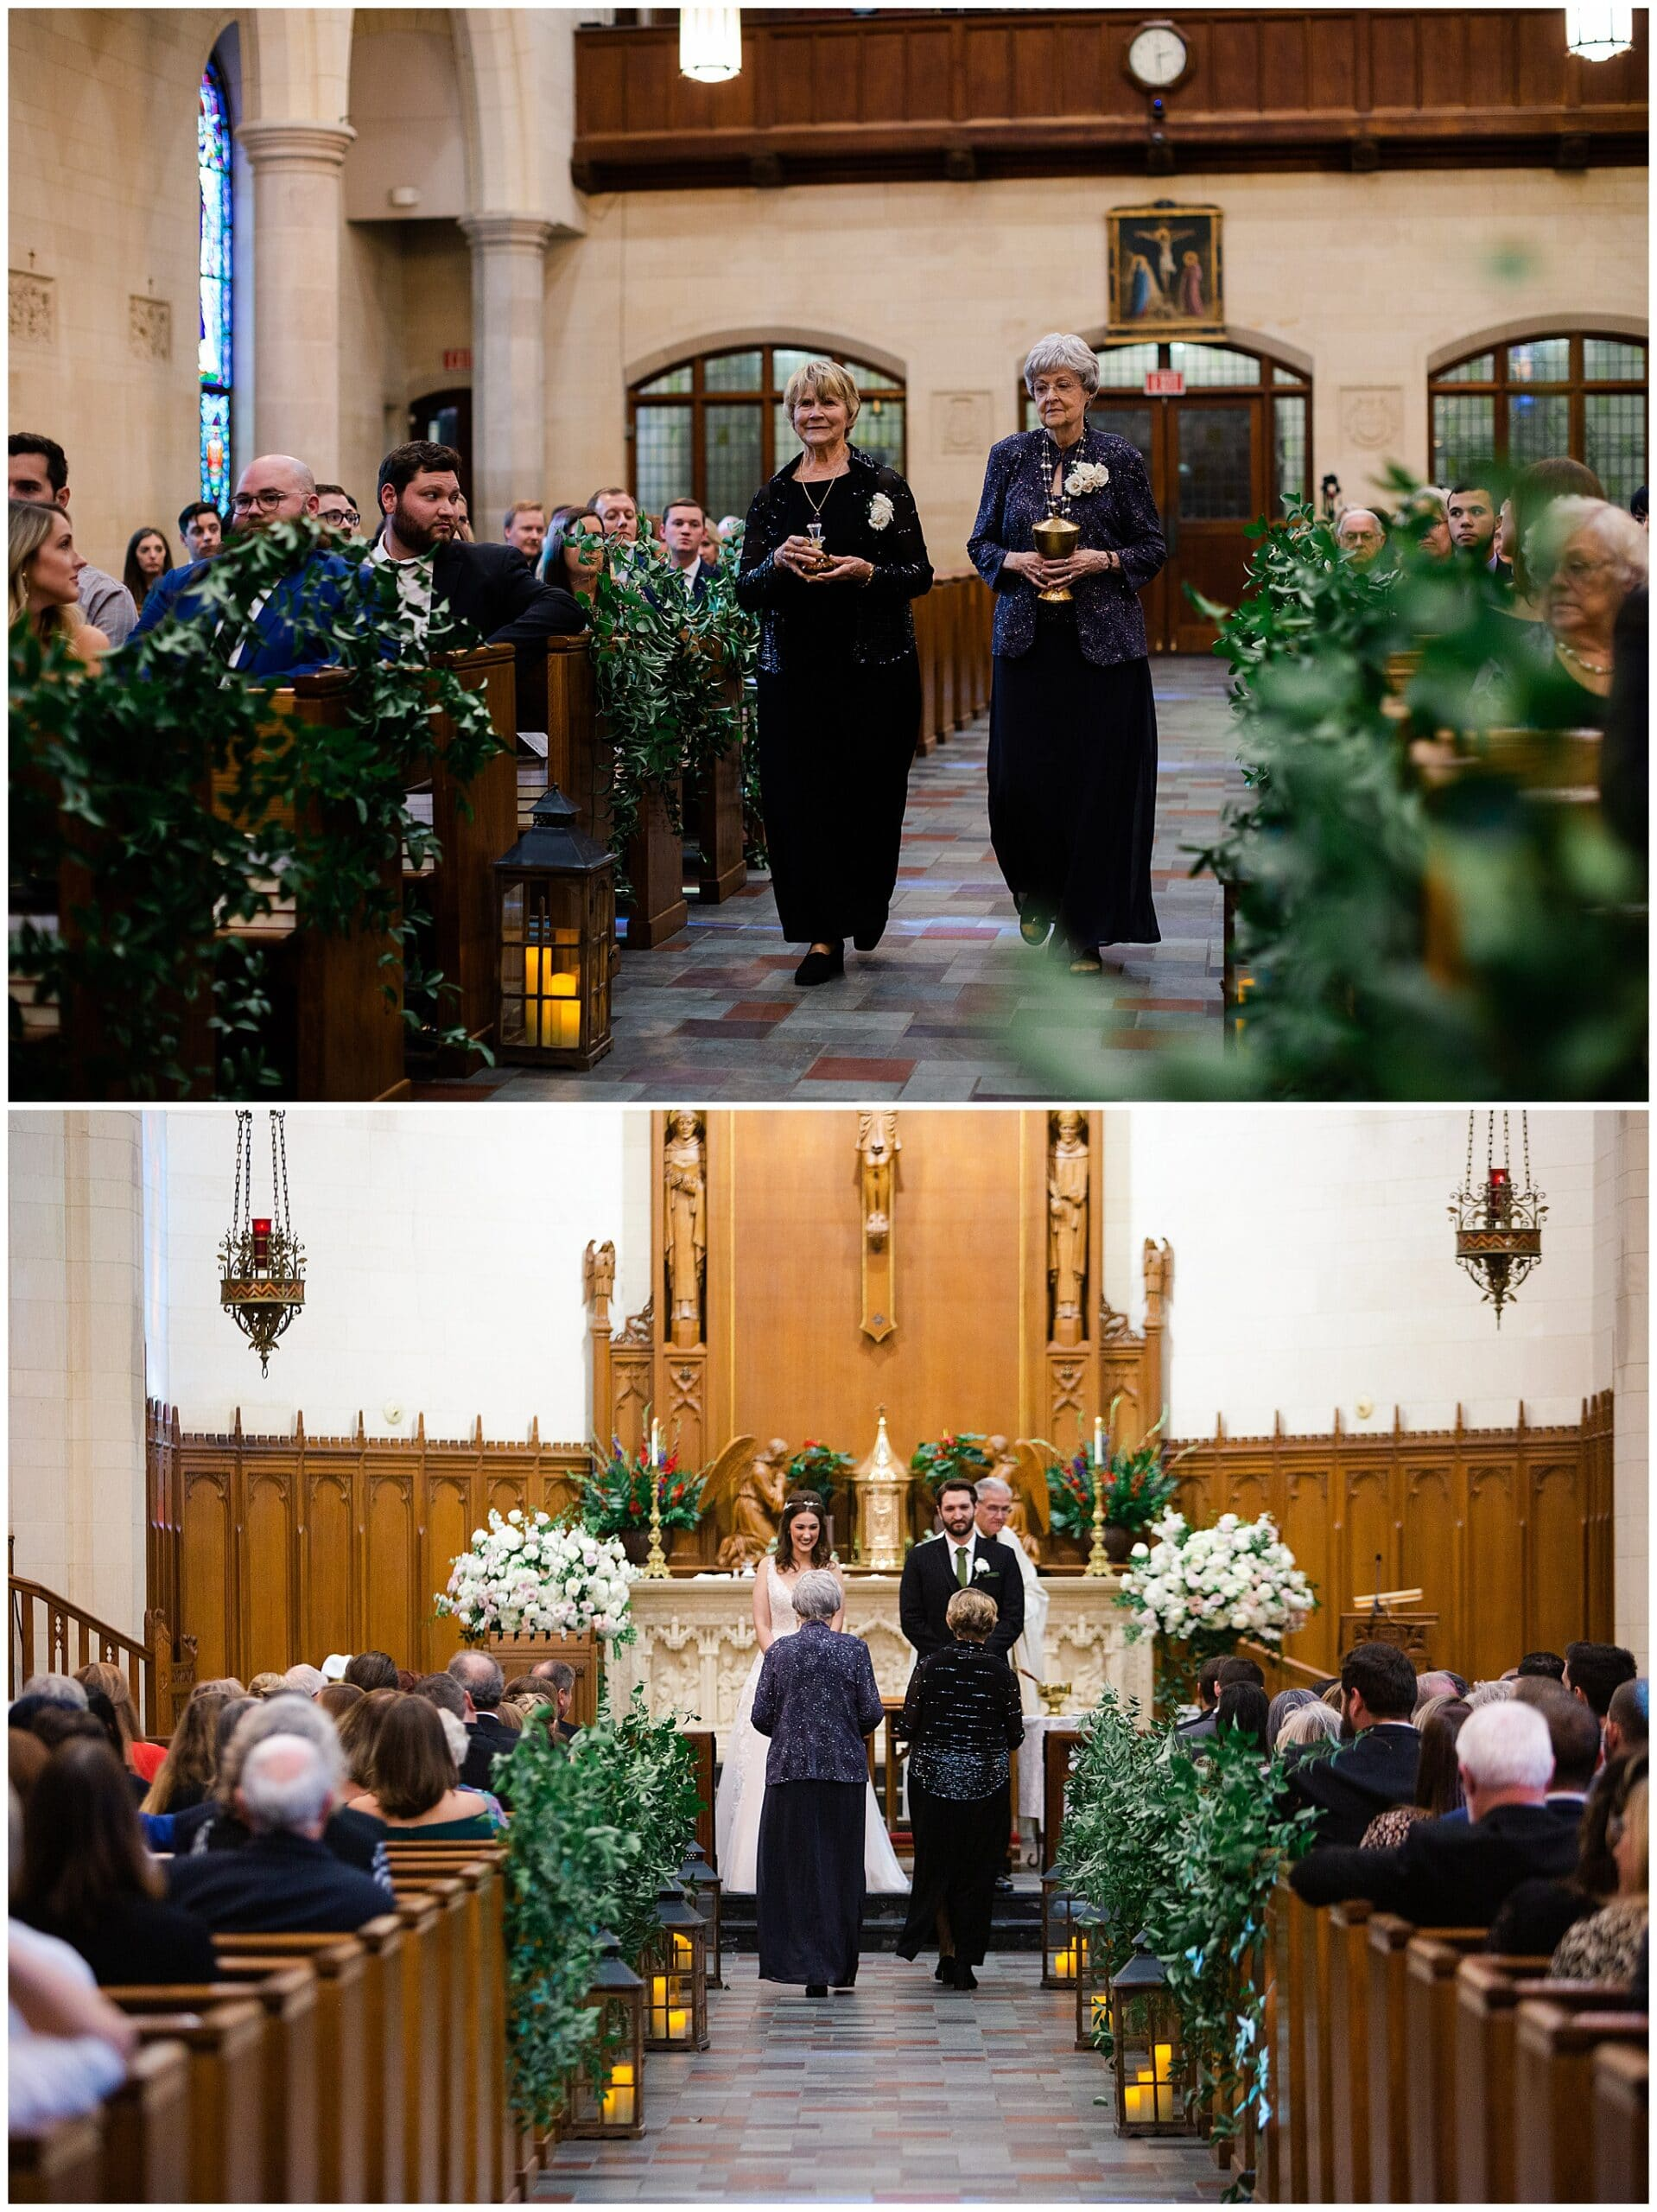 Catholic wedding ceremony at Holy Rosary Catholic Church captured by Swish and Click Photography